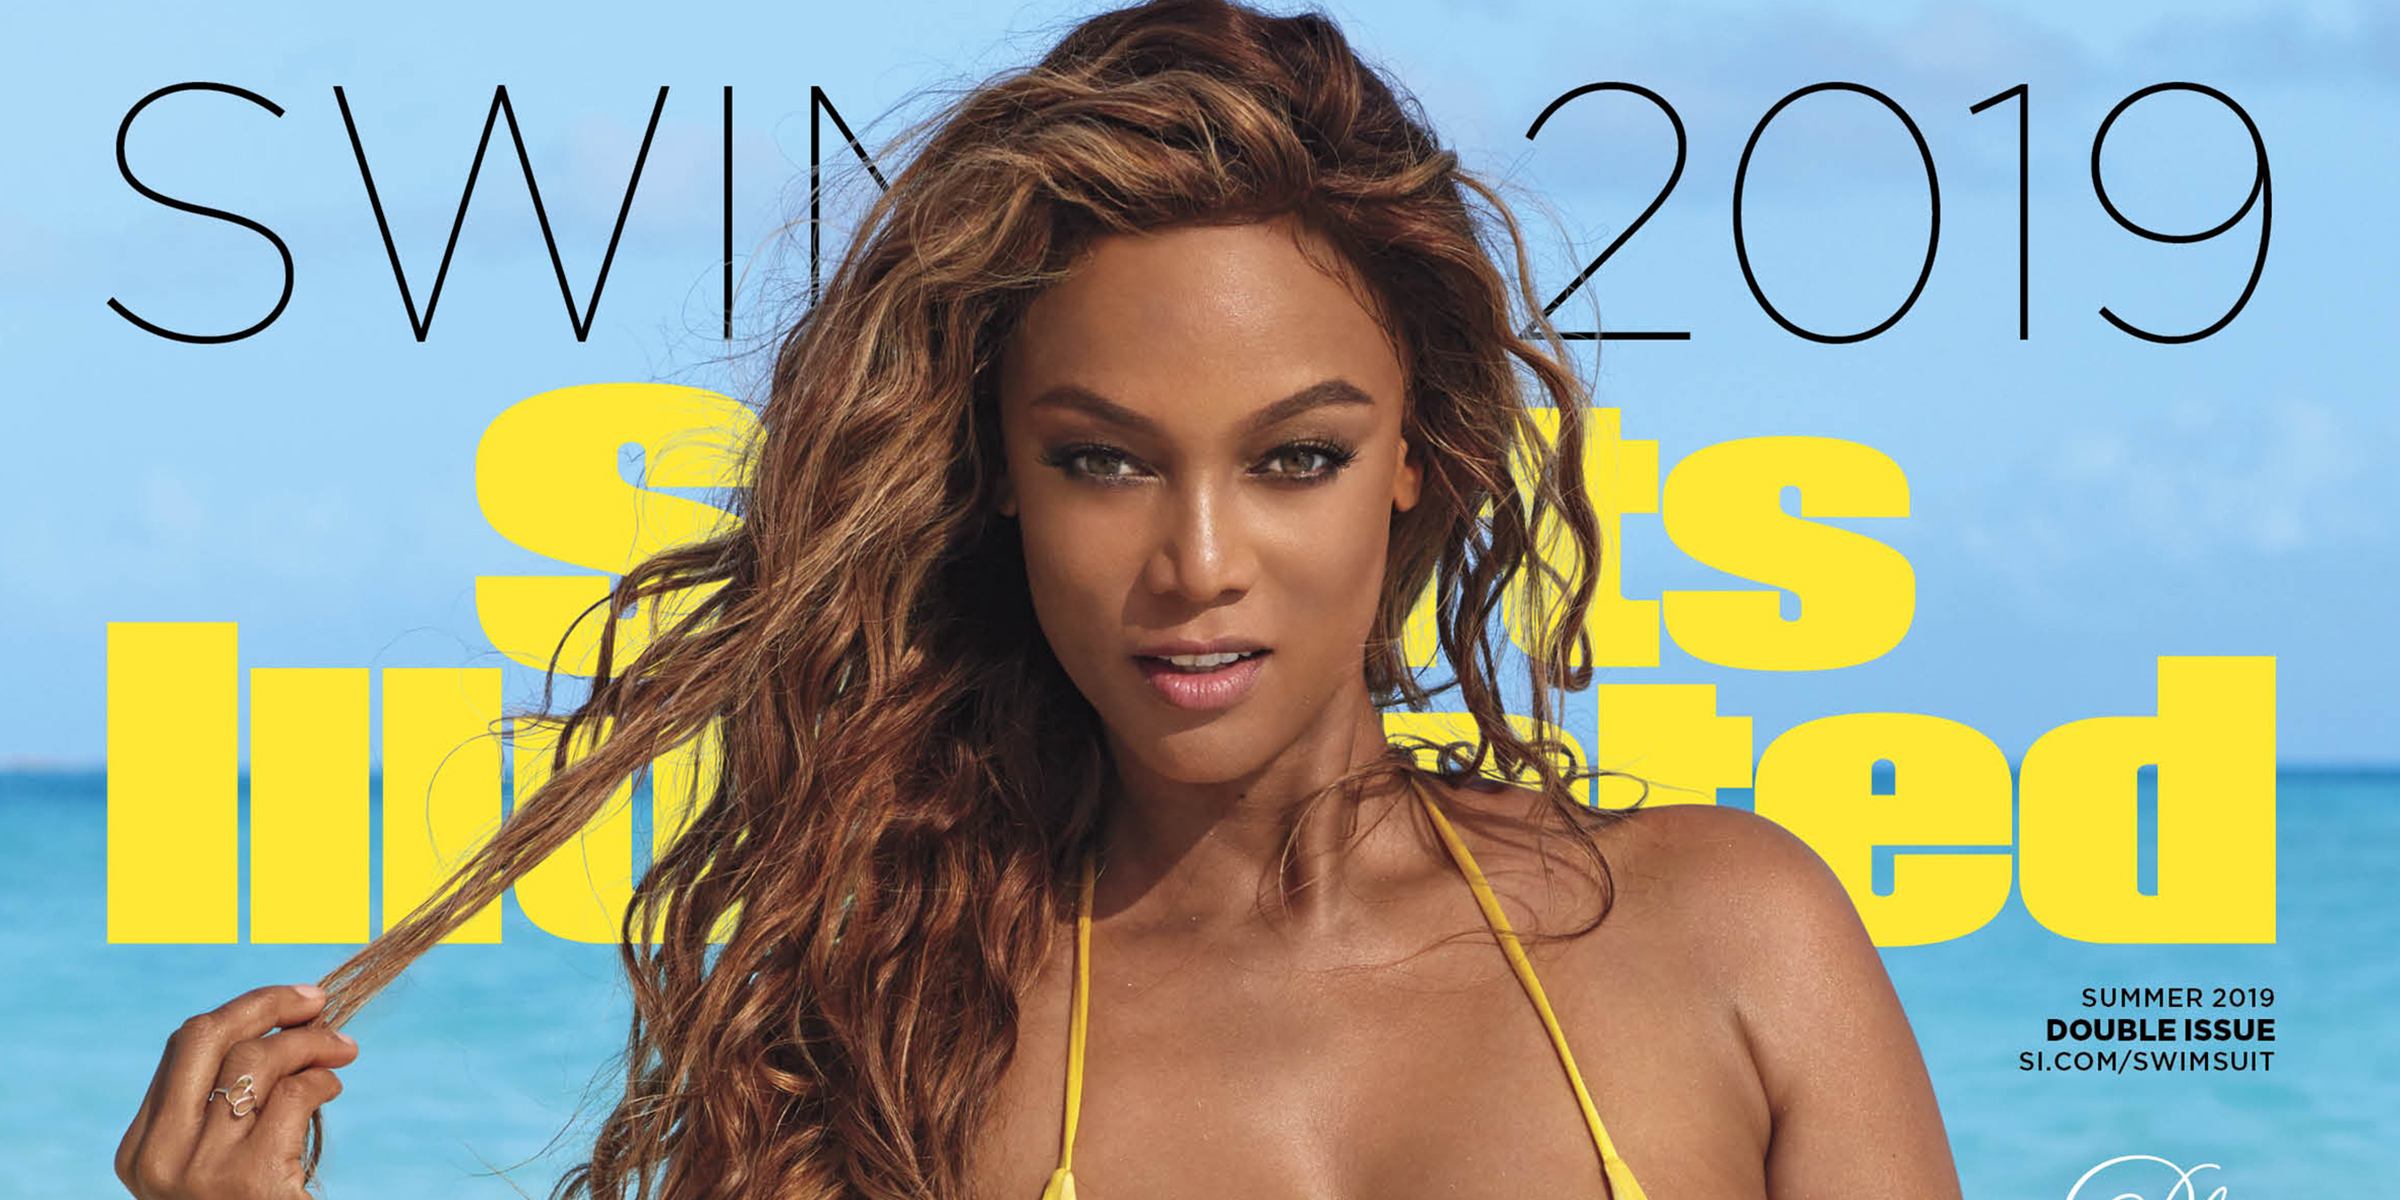 Tyra Banks Returns As A Sports Illustrated Swimsuit Cover Model At 45